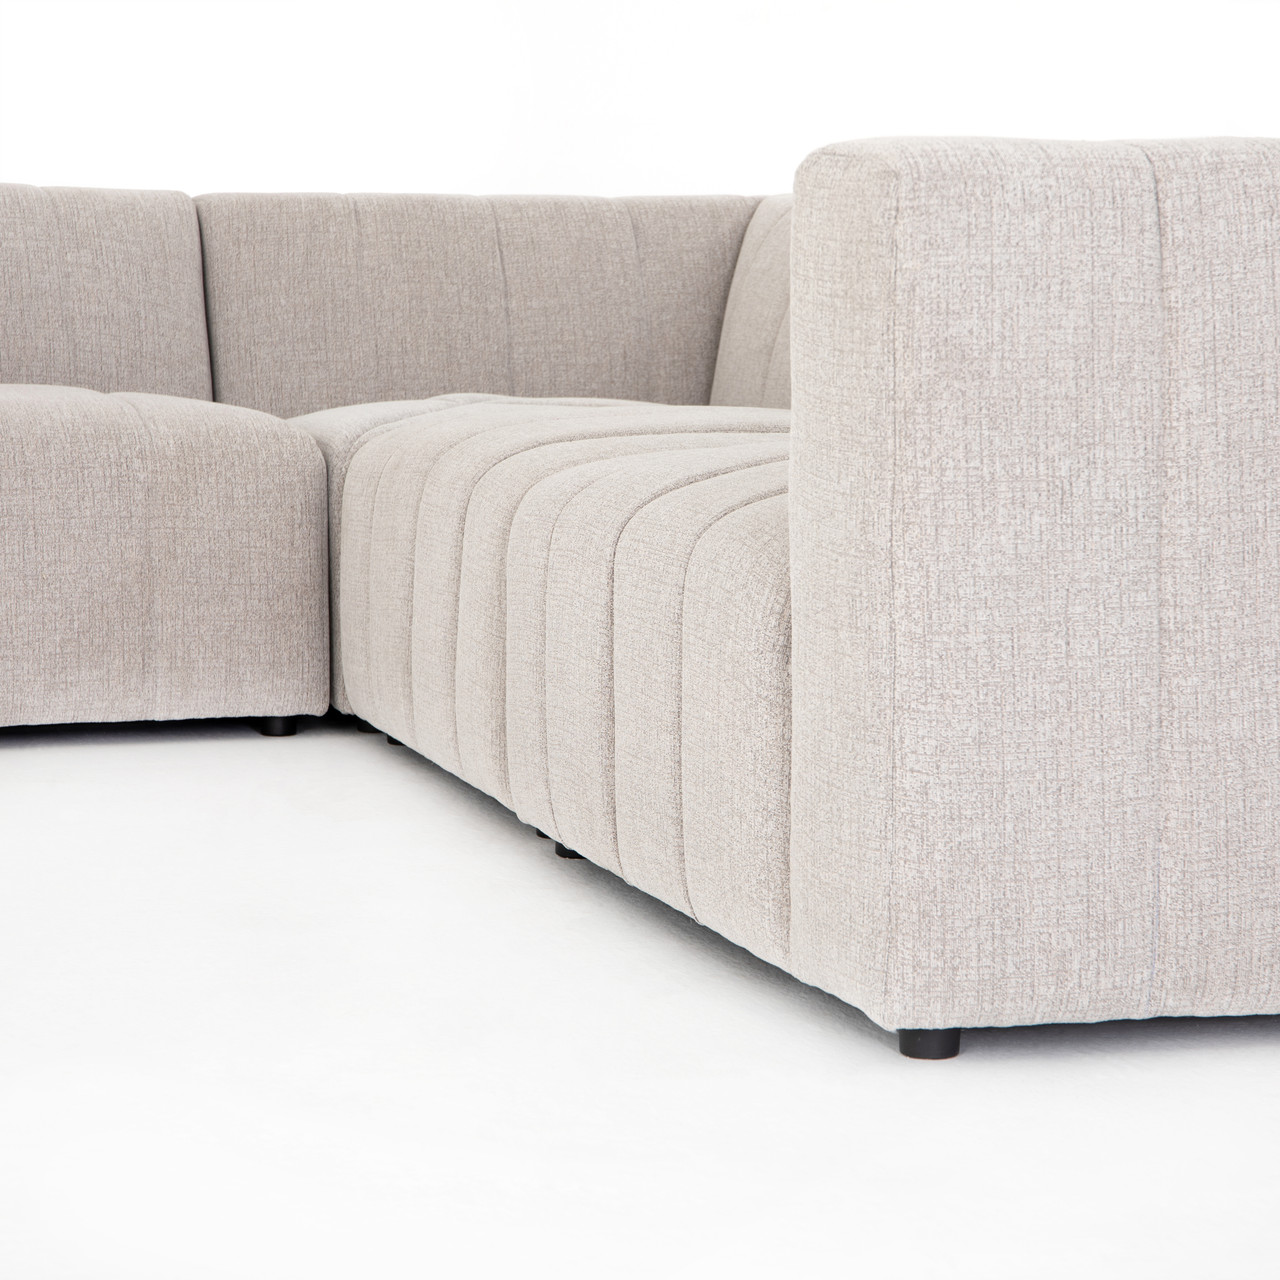 Langham Channeled 6-PC Laf Chaise Secti